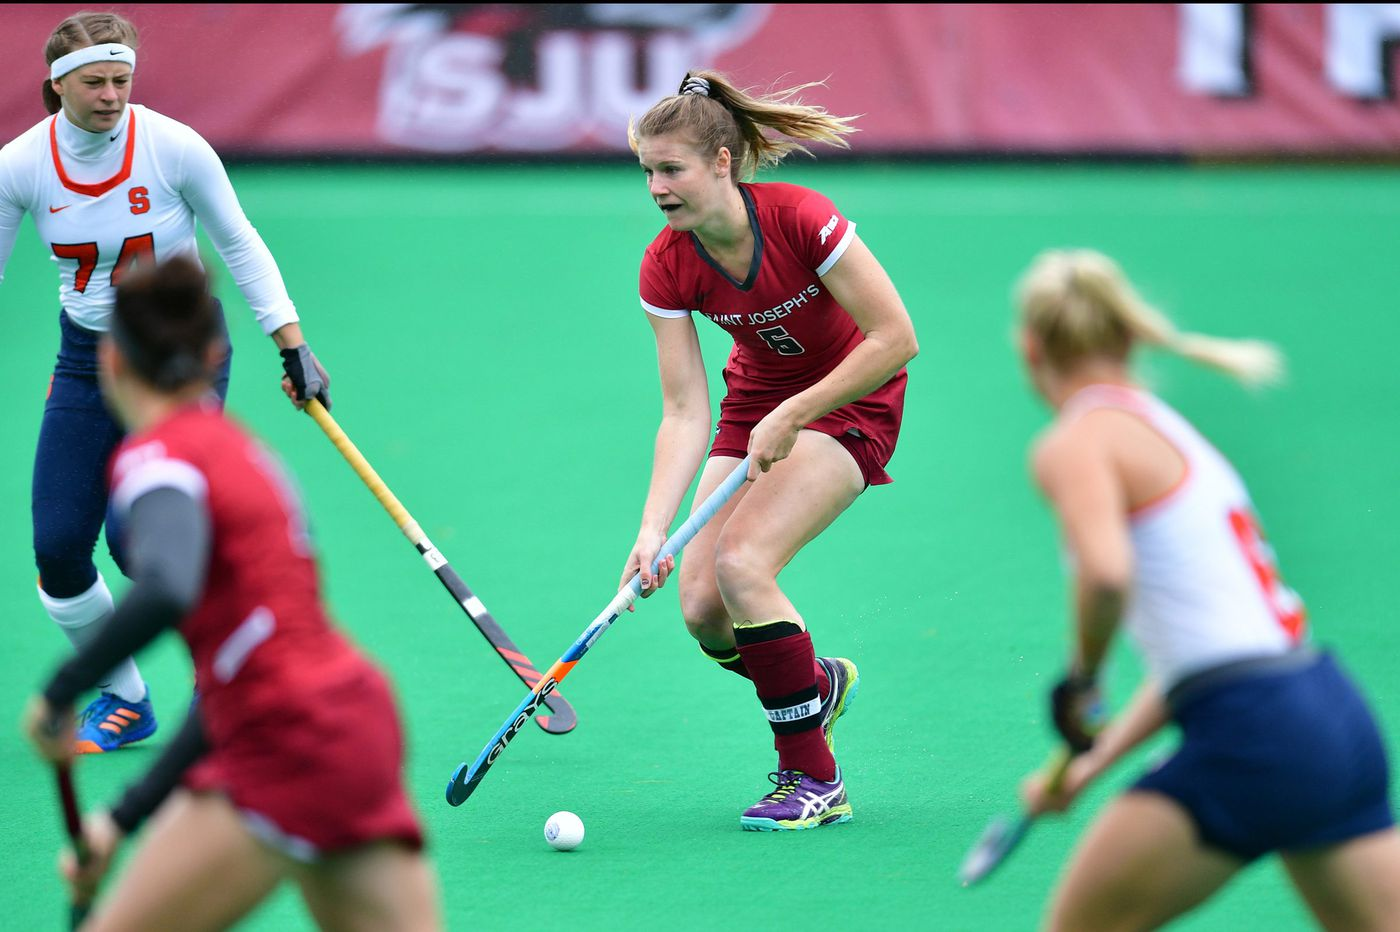 Saint Joseph's looking to take another step at Atlantic 10 field hockey championships